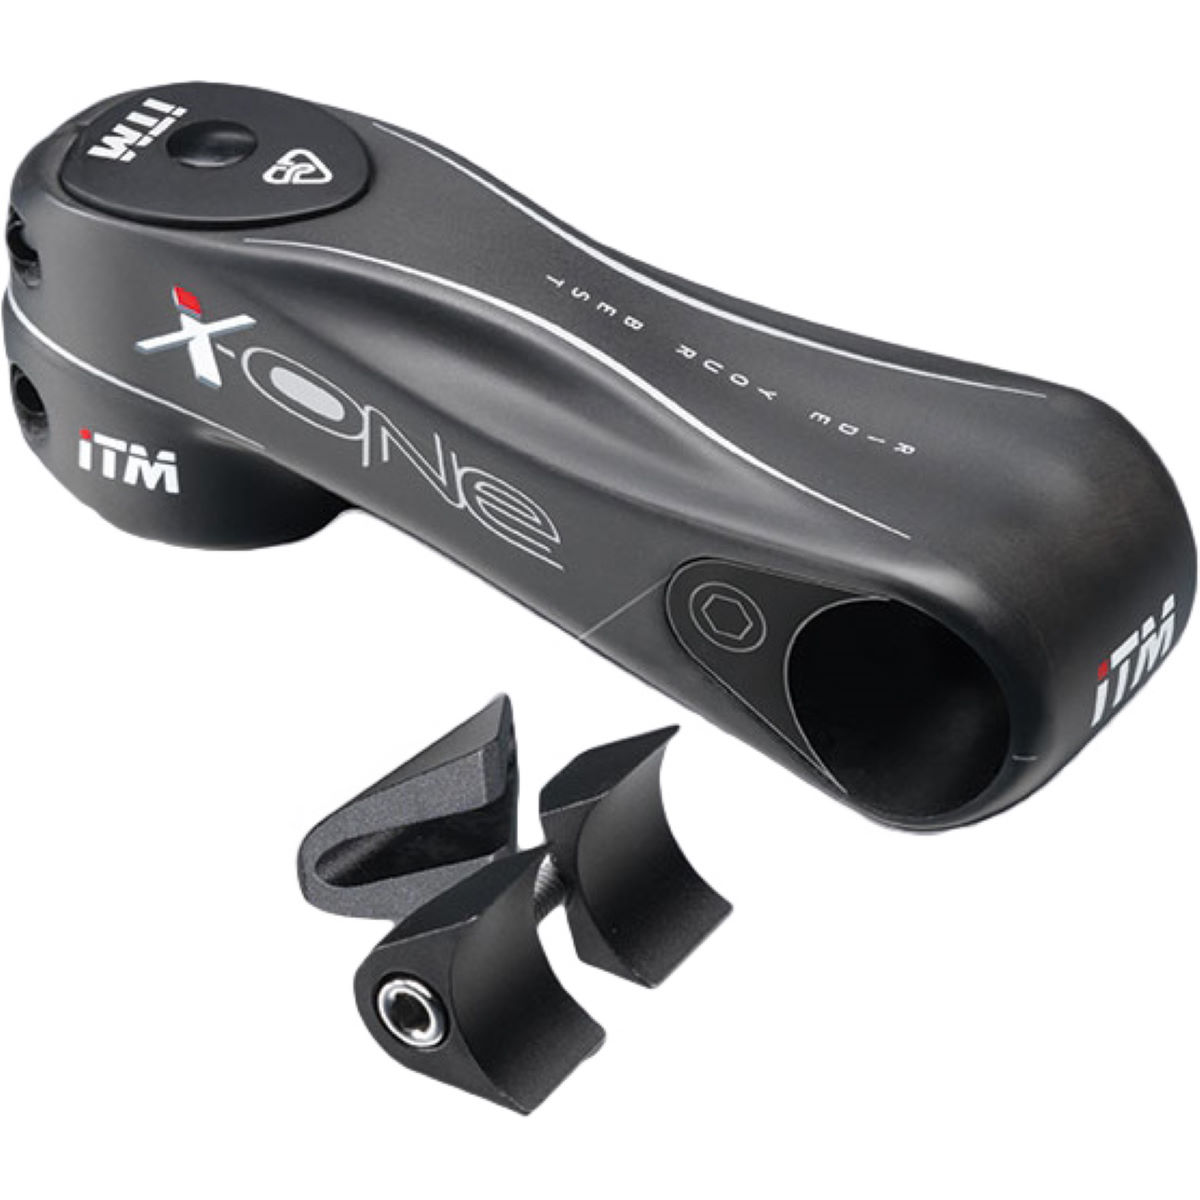 ITM ITM X-One Road Stem   Stems